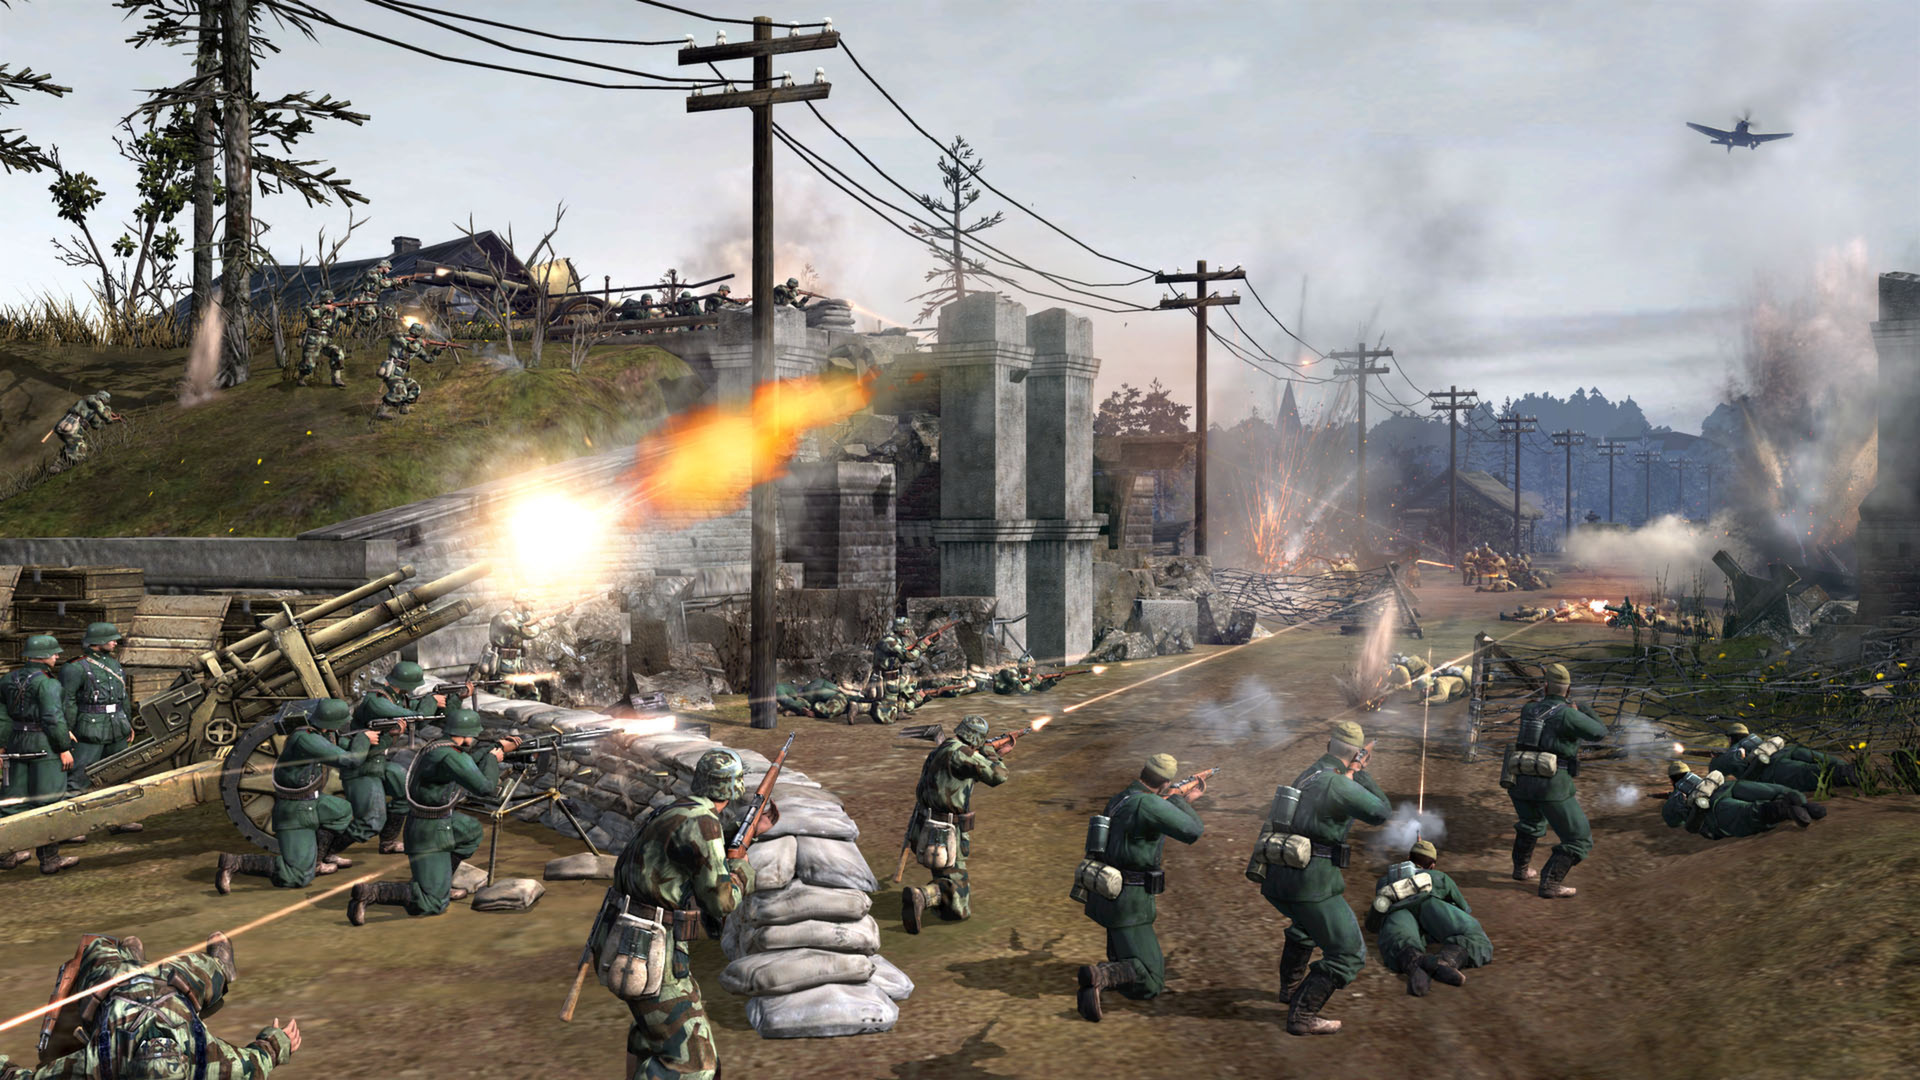 225b48a6 fdb5 4c1c 84a4 8763962bfd8e - Company Of Heroes 2 Ardennes Assault All Commanders Mod